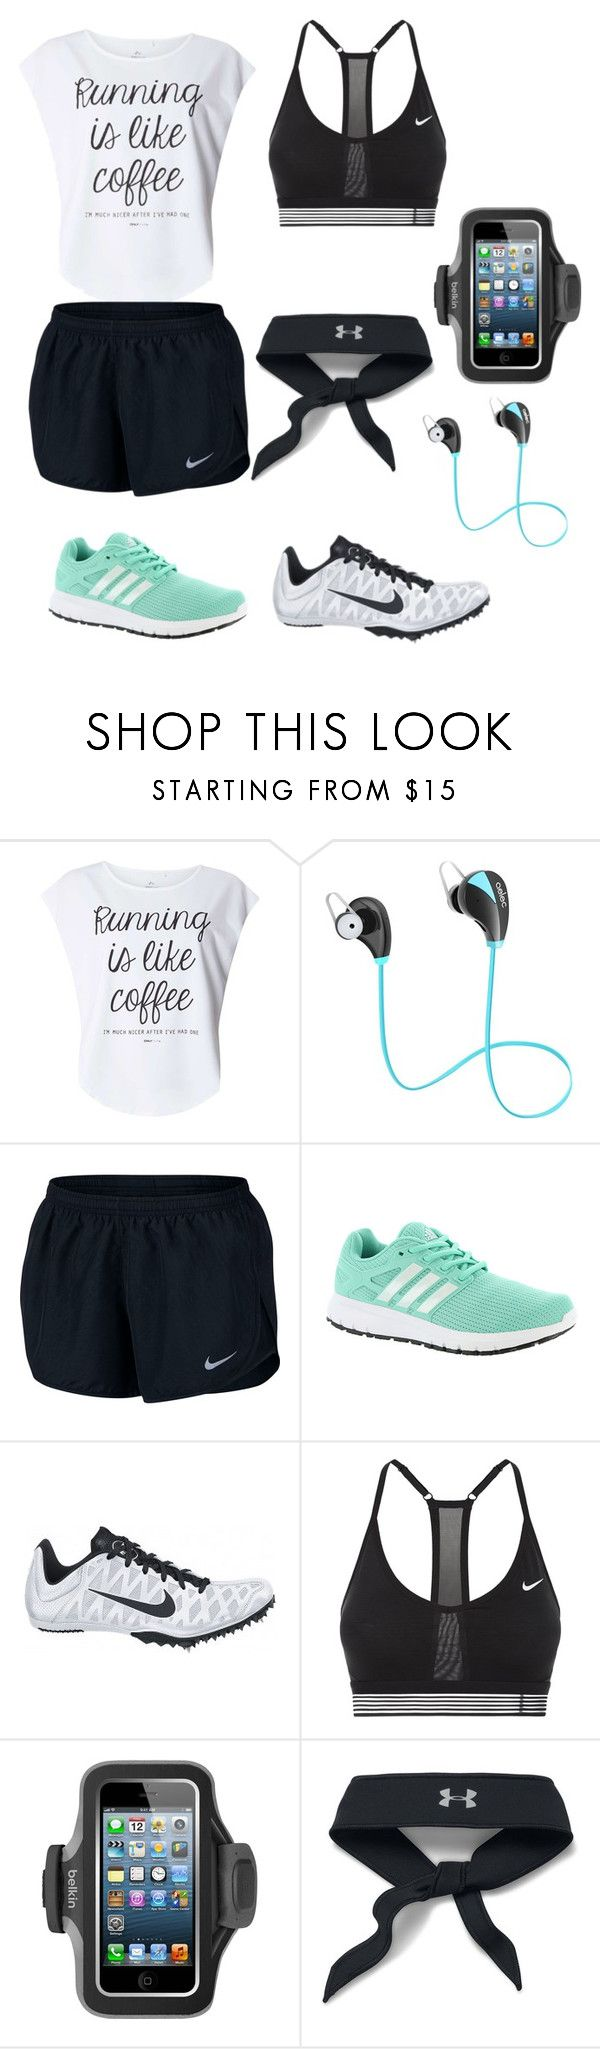 """Cross Country Outfit"" by neongirlz5 on Polyvore featuring Dorothy Perkins, NIKE, adidas, Belkin, Under Armour and country"